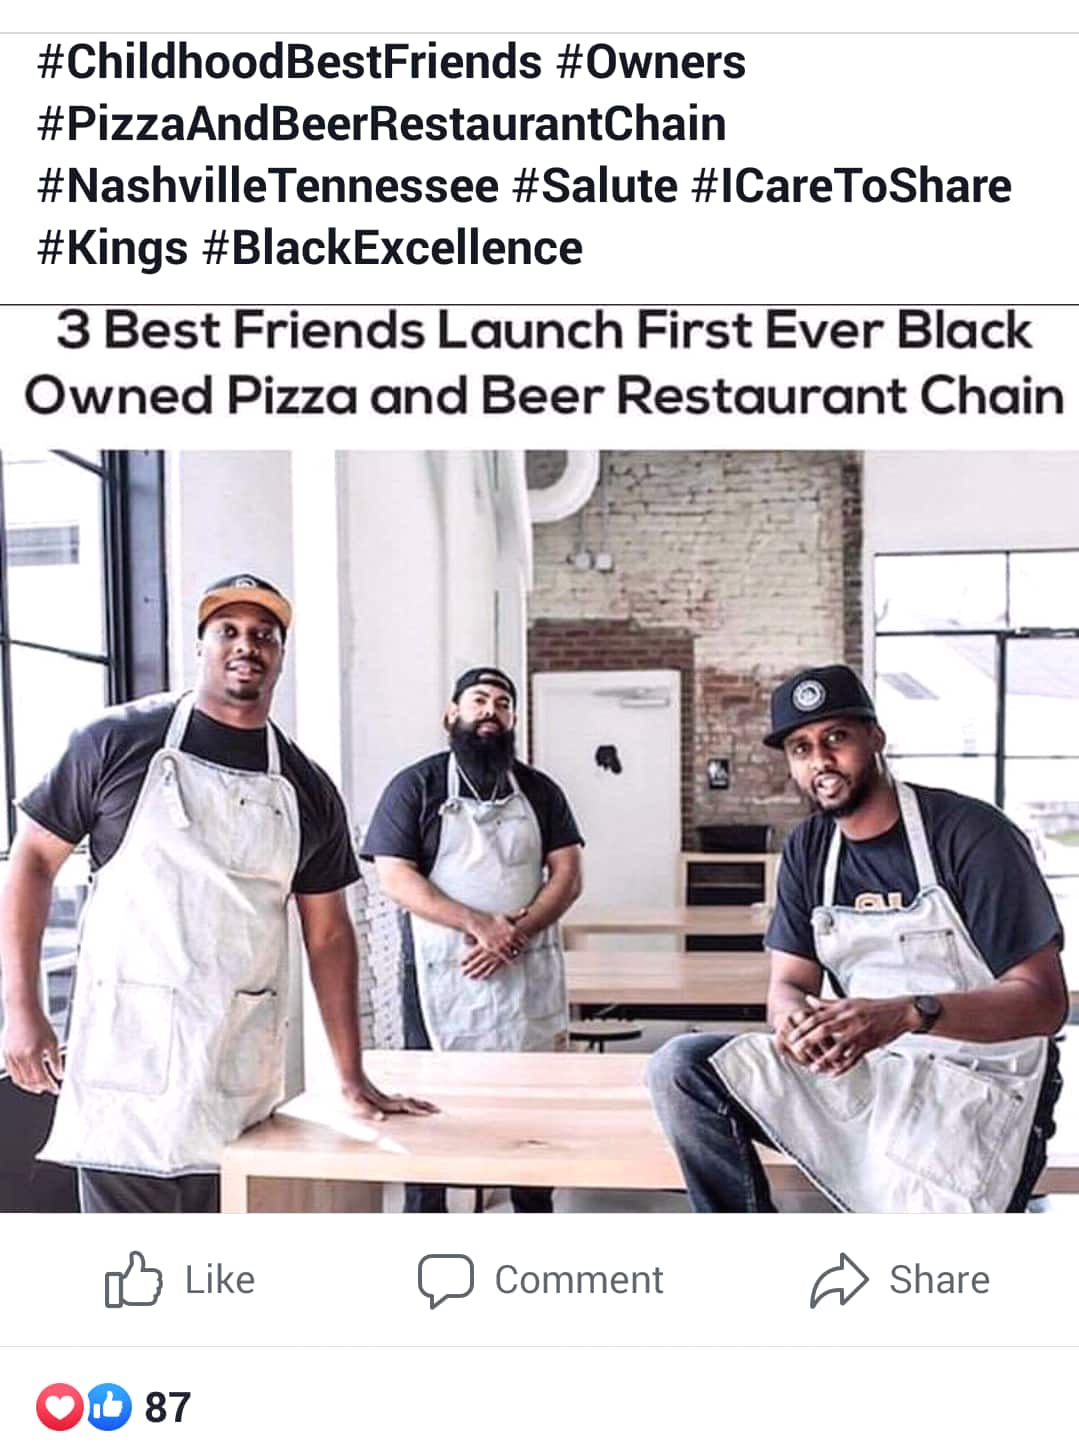 Historic pizza business owned by Blacks creates opportunity, reduces poverty in their community